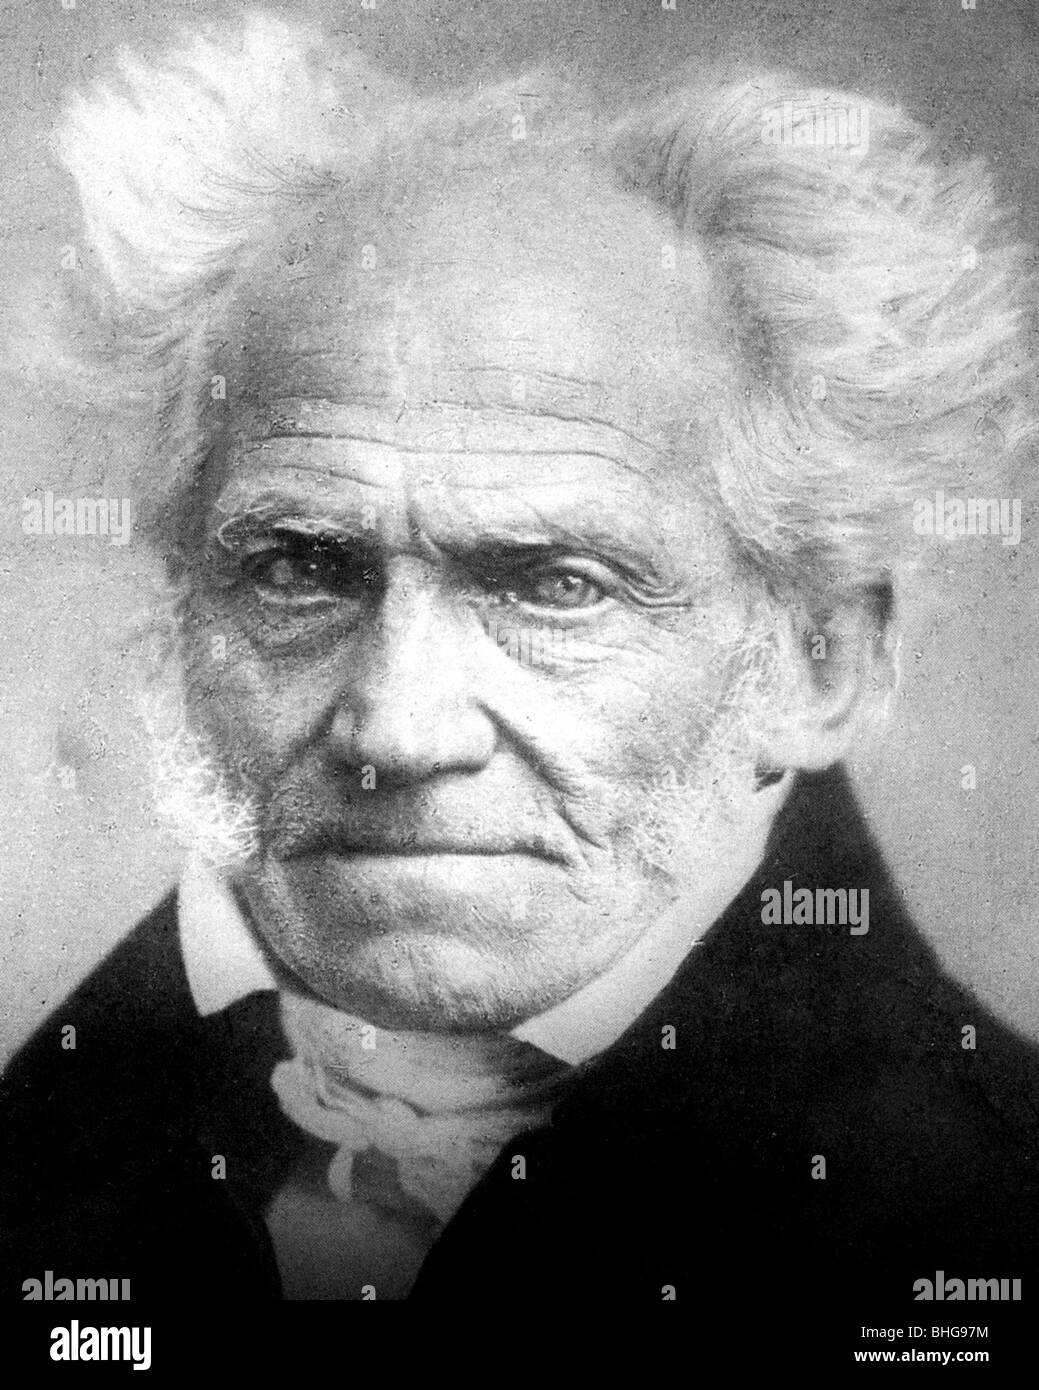 a biography of arthur schopenhauer a german philospher Arthur schopenhauer - german philosopher he was one of the most famous thinkers and misanthrope he was fond of mysticism, highly appreciated the main.